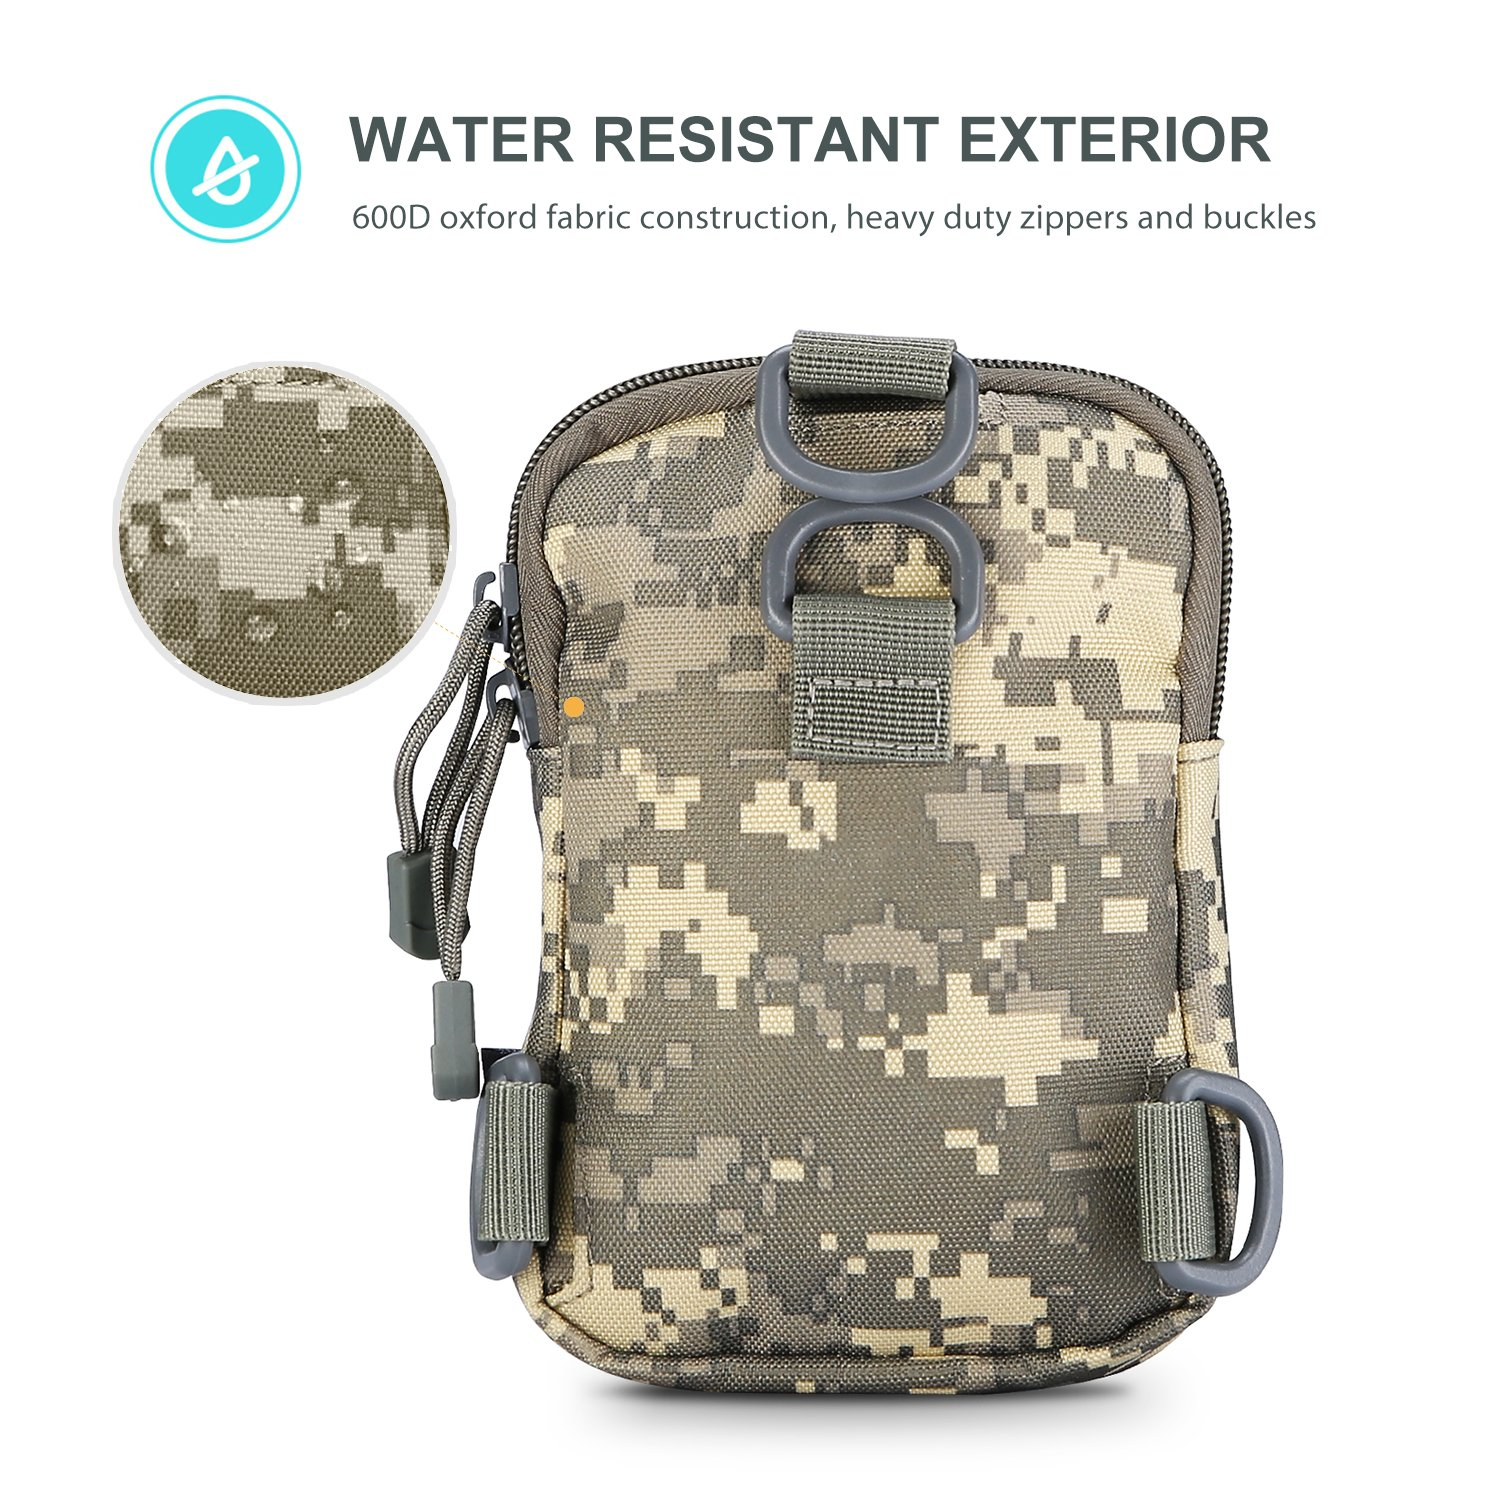 Amazon.com : ProCase Tactical Molle Phone Pouch, Compact Waster-Resistant EDC Utility Gadget Gear Belt Waist Bag Multipurpose Fanny Pack with Cell Phone ...